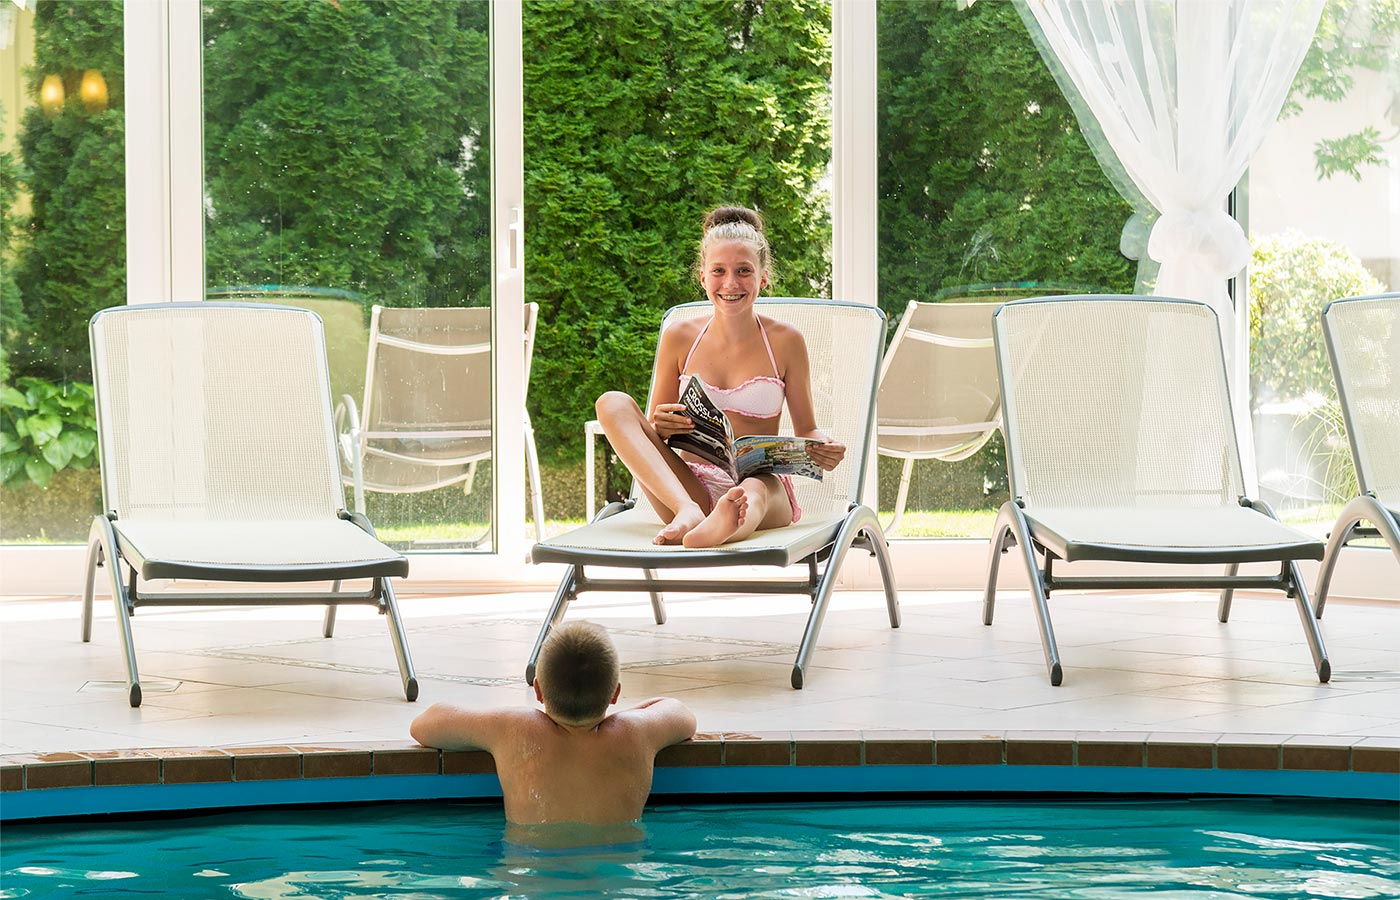 Children enjoy a moment of relaxation in the children's pool at the Hotel Alpenhof